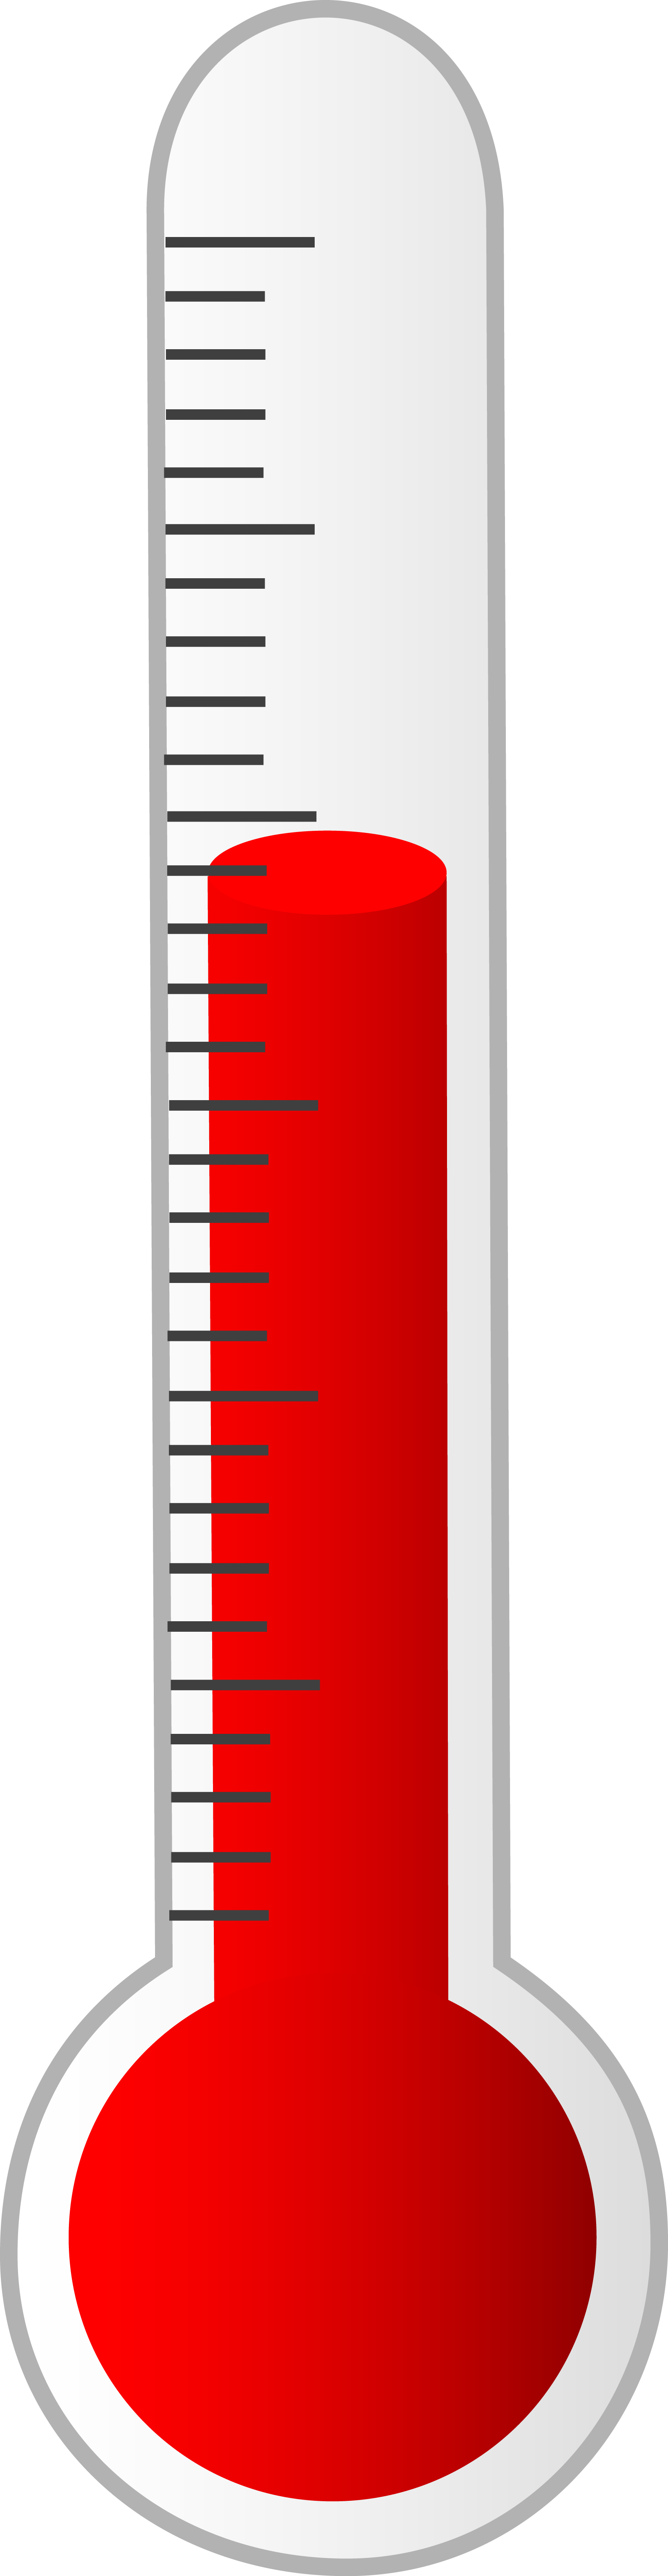 Thermometer cliparts